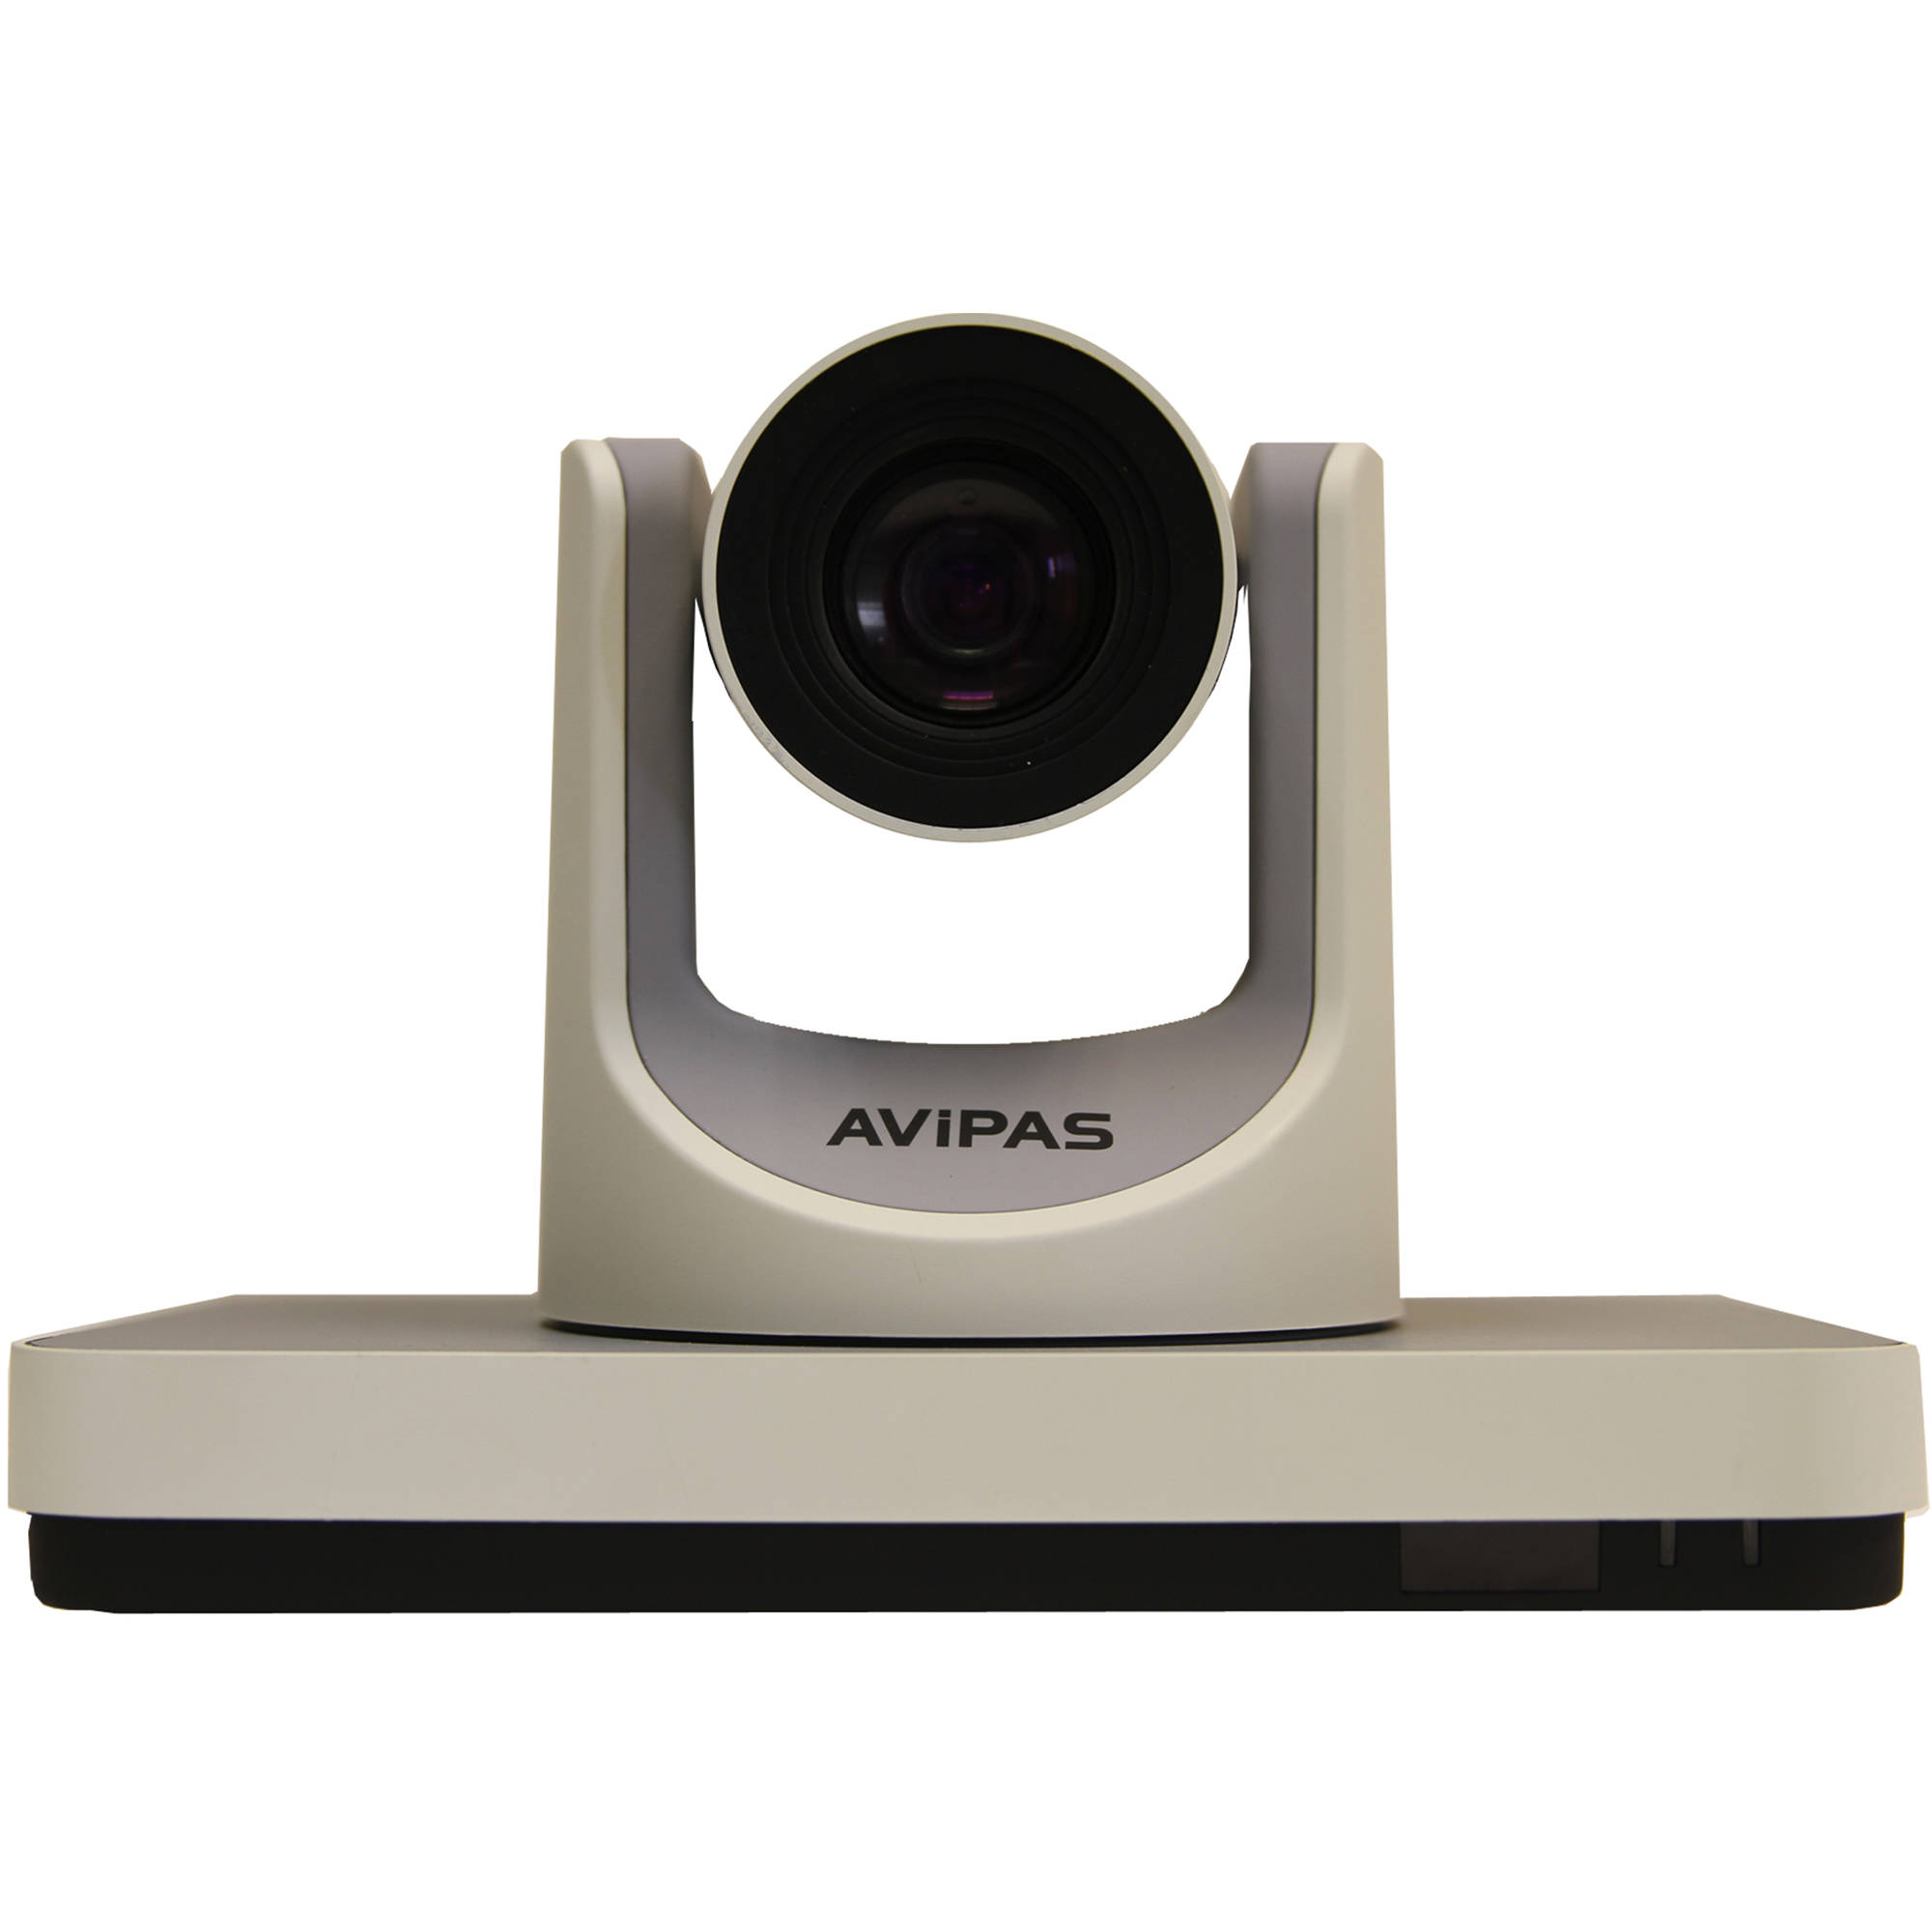 SWIT AV-1360 HD PTZ Video Conference Camera